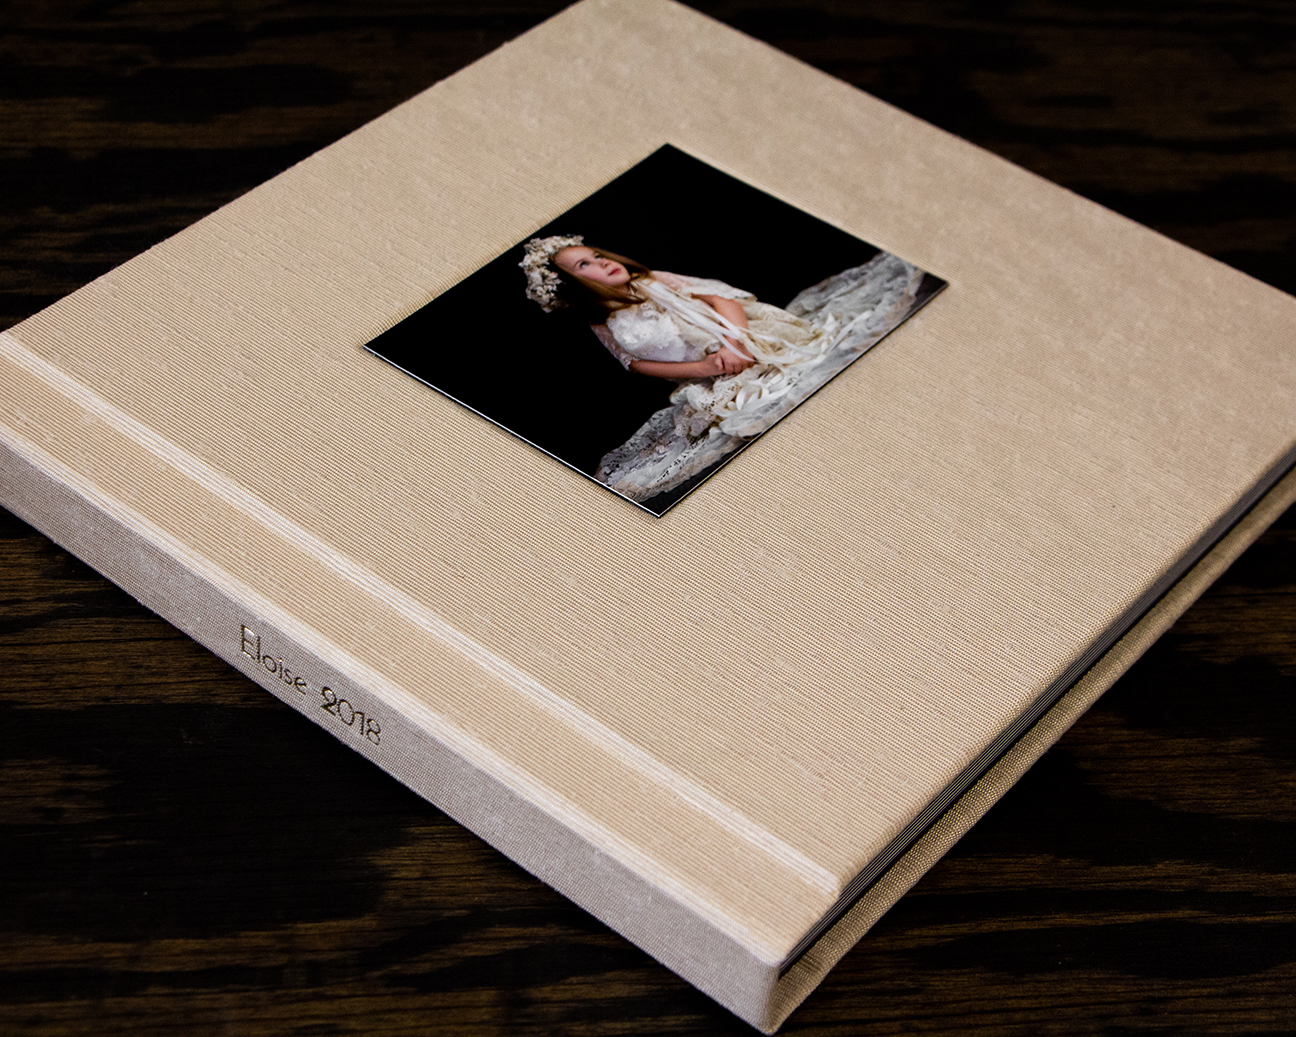 Horizontal Spine Imprinting In Modern Font With Cover Photo No Liner Optical Center I © Angela Weedon